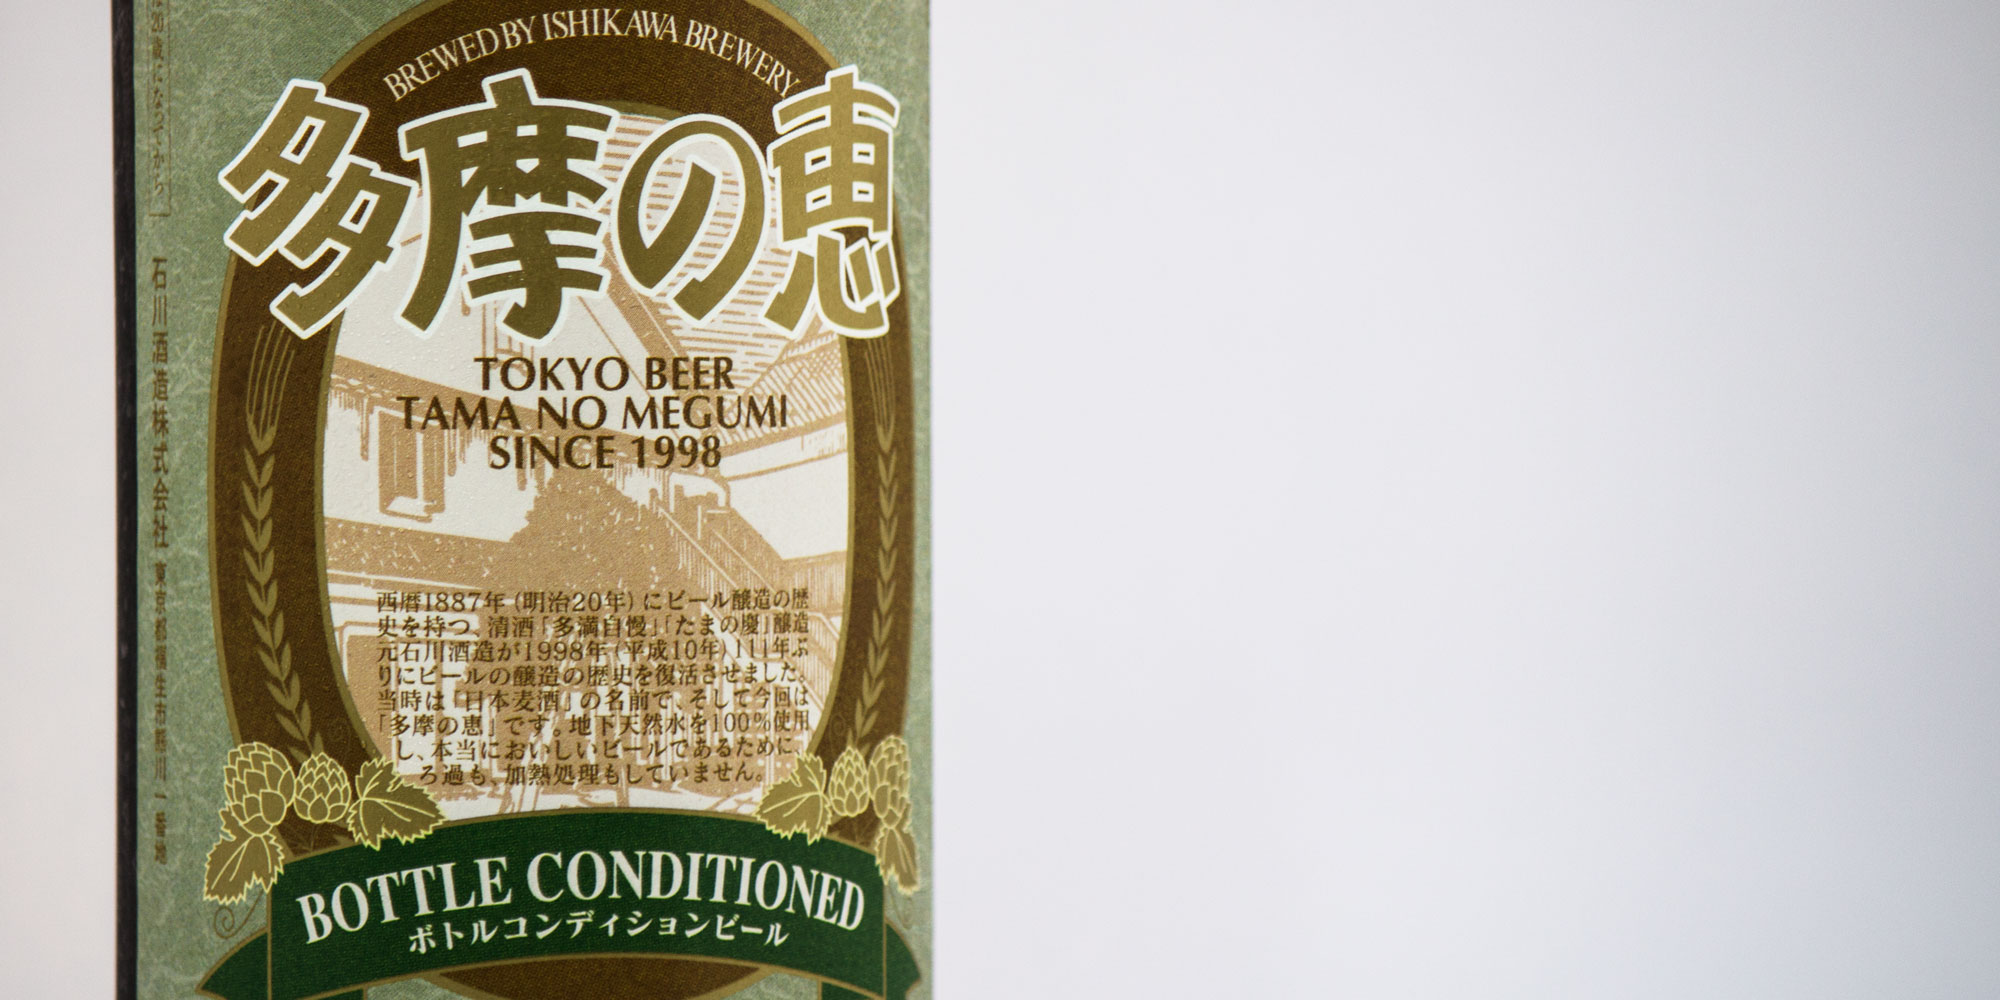 Bottled-Conditioned-Ale---Tama-No-Mgumi03.jpg